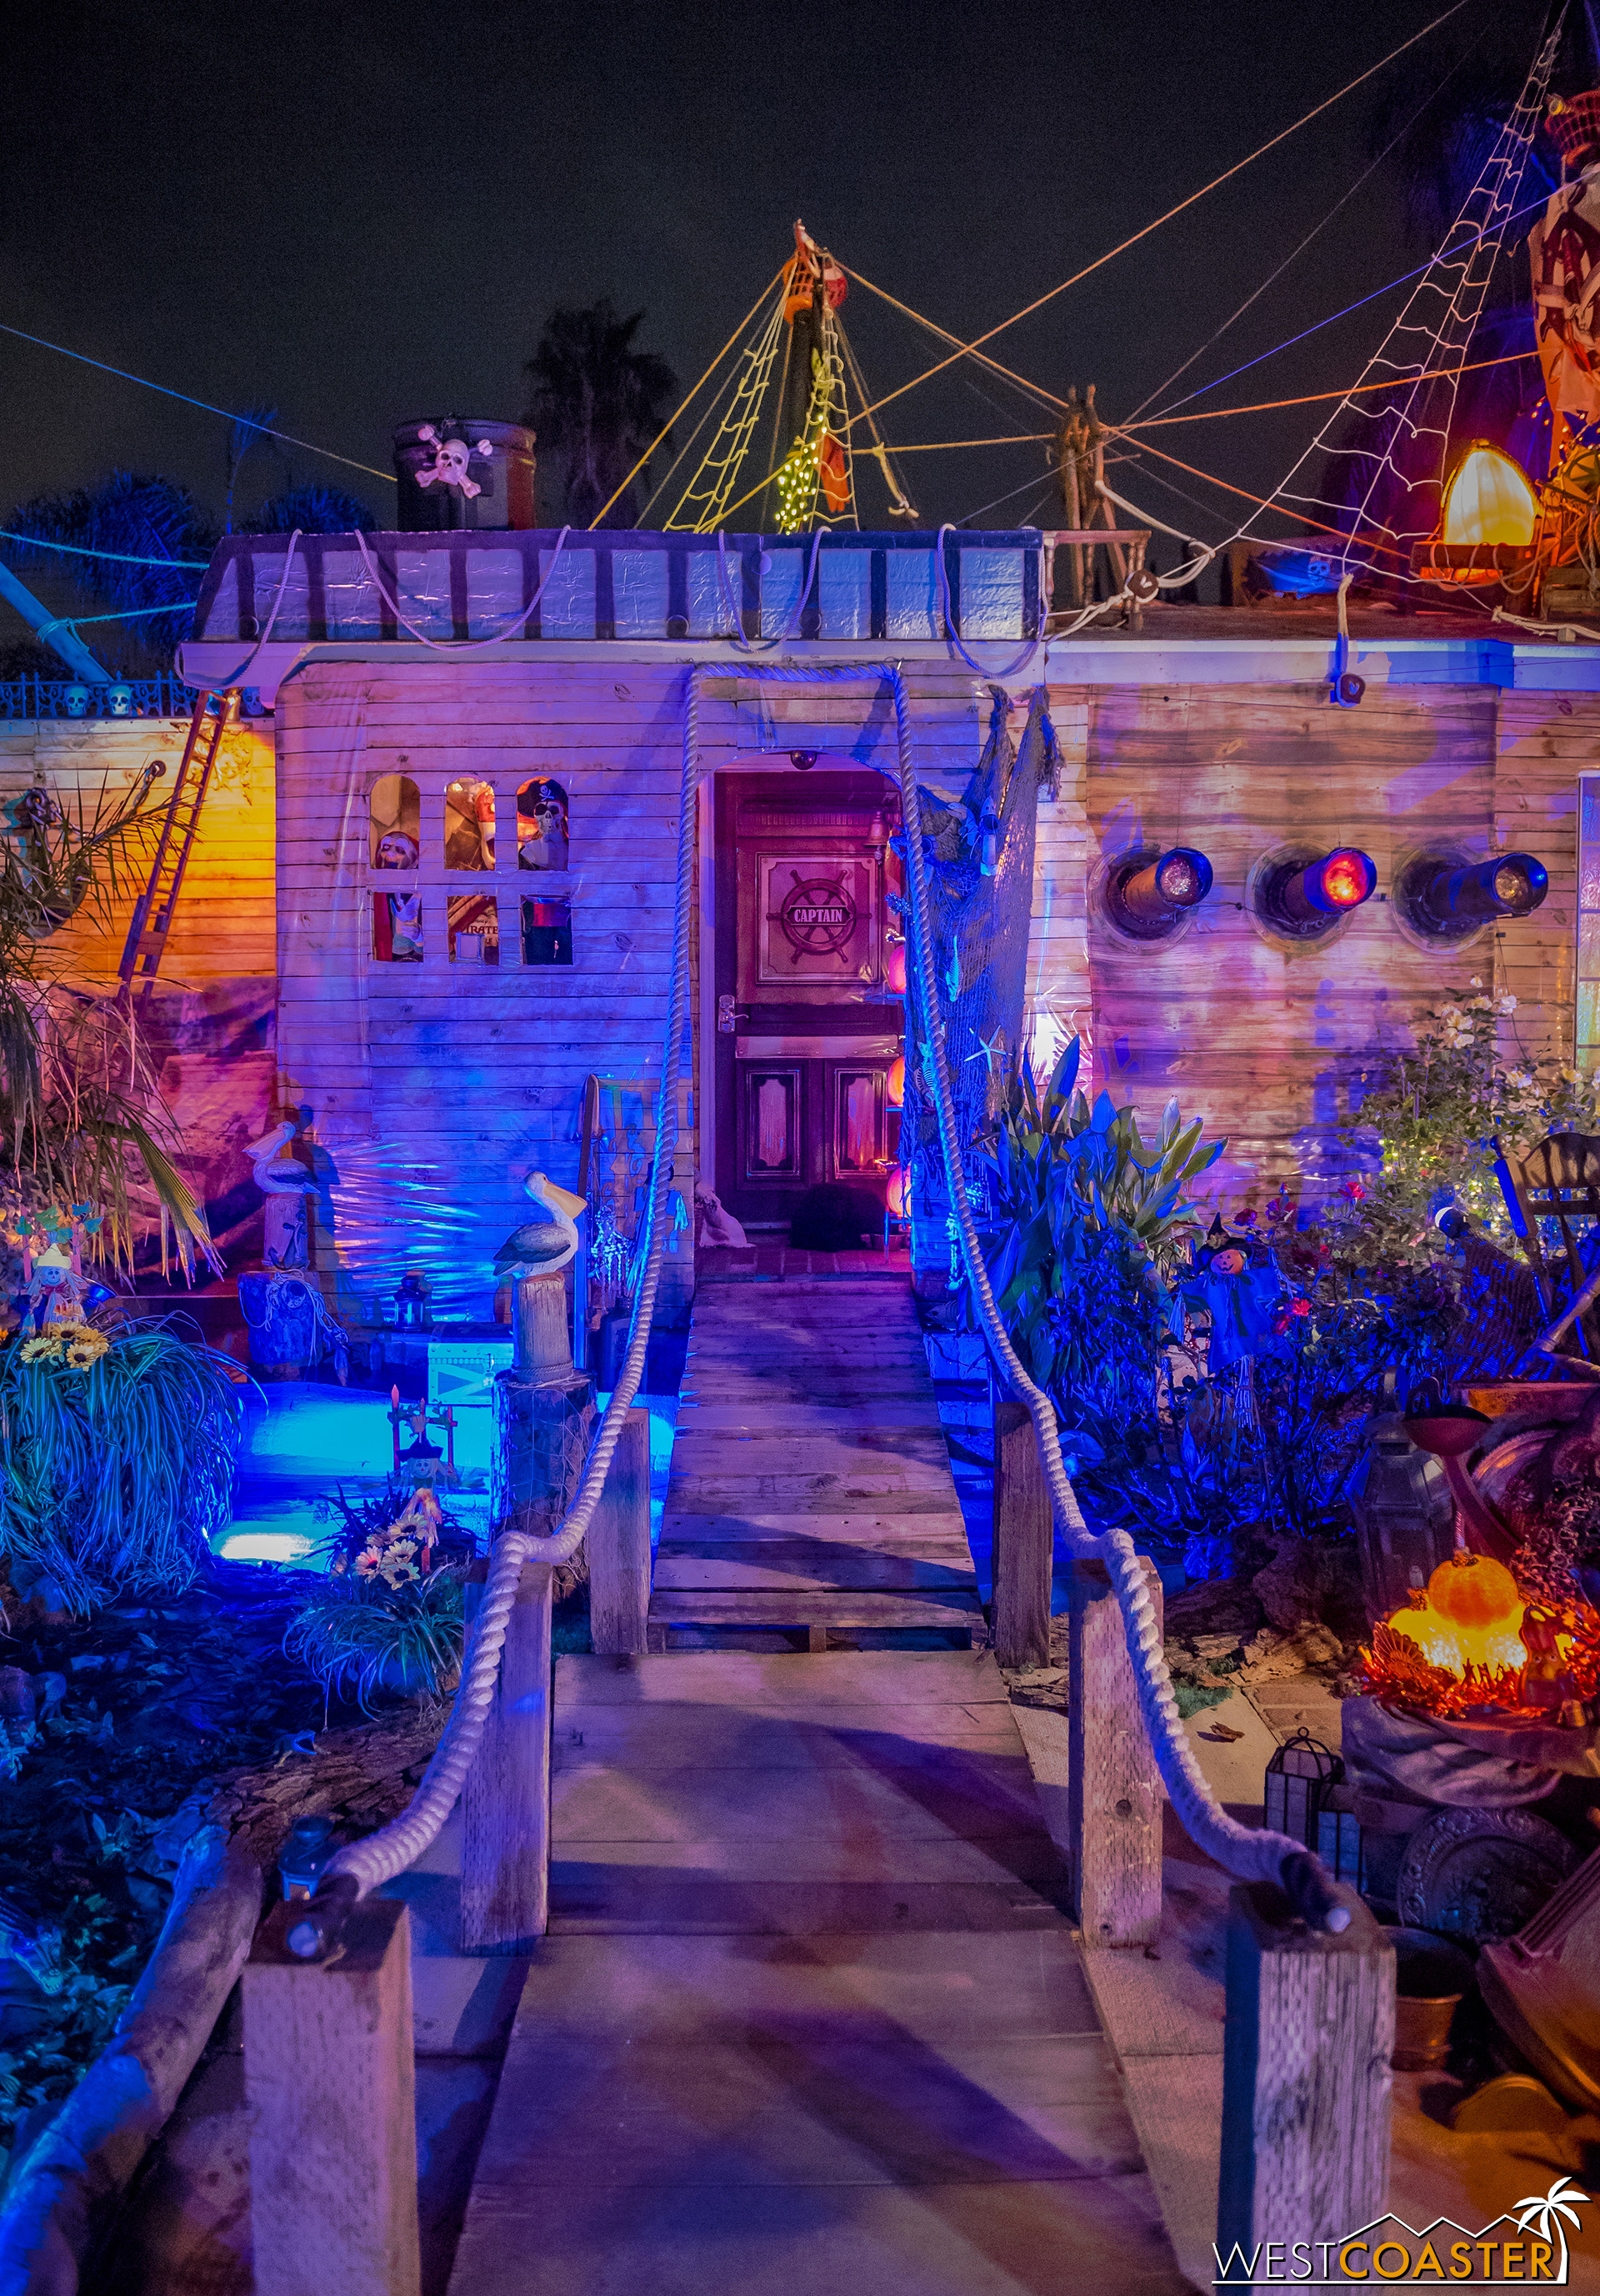 The entry door into the house is just about the only element recognizable from a residence in this amazing yard display.